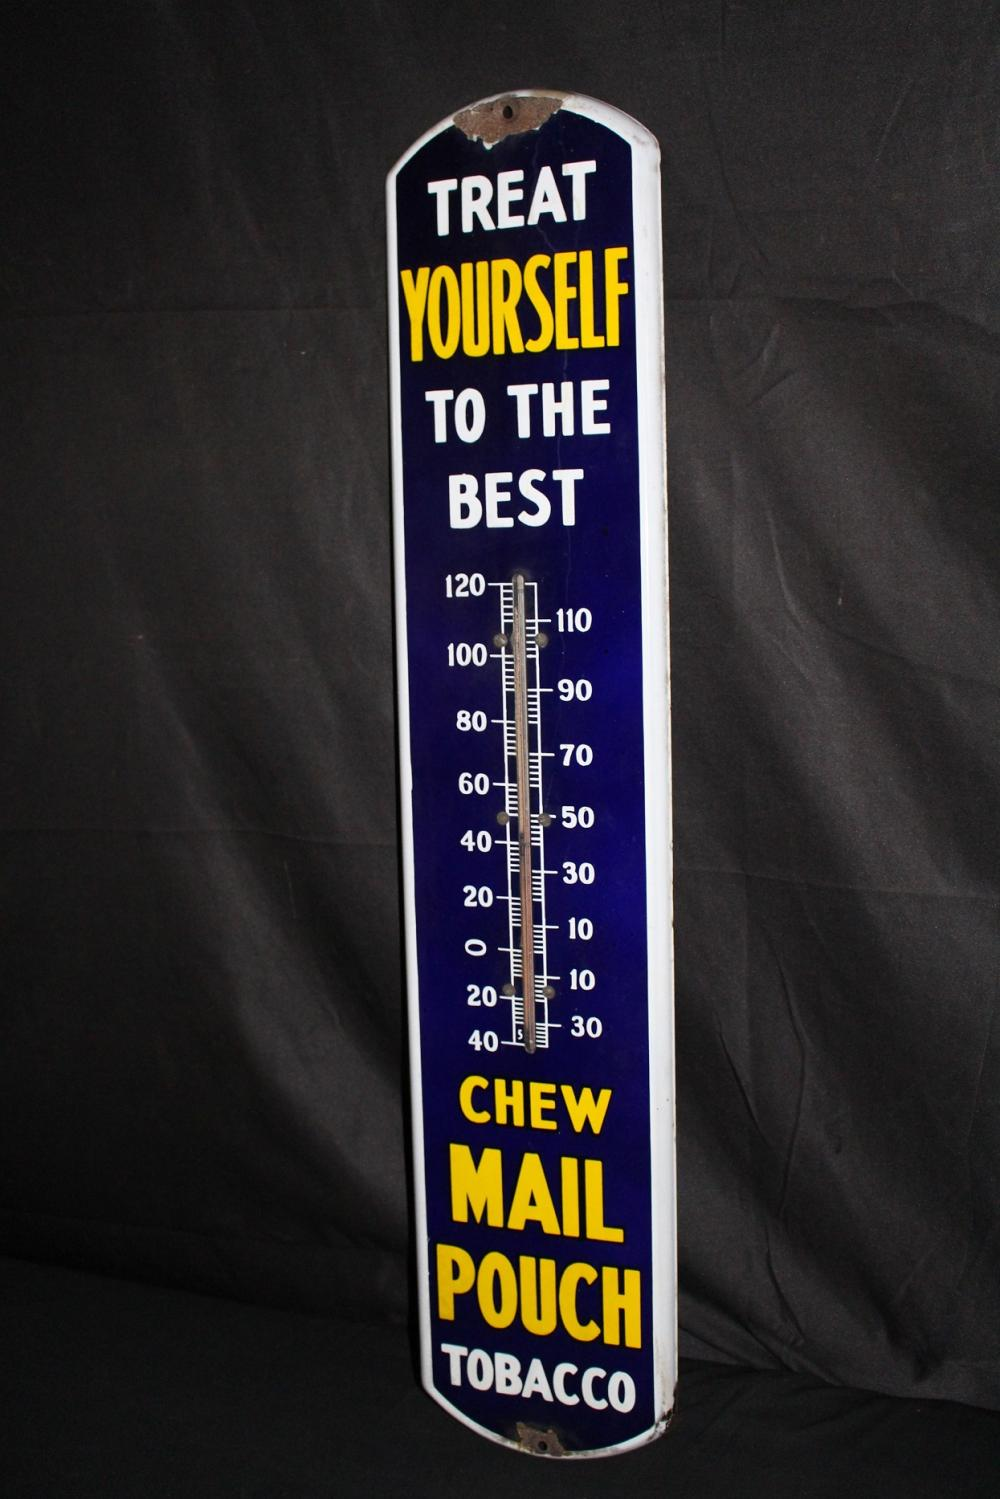 PORCELAIN MAIL POUCH TOBACCO THERMOMETER SIGN